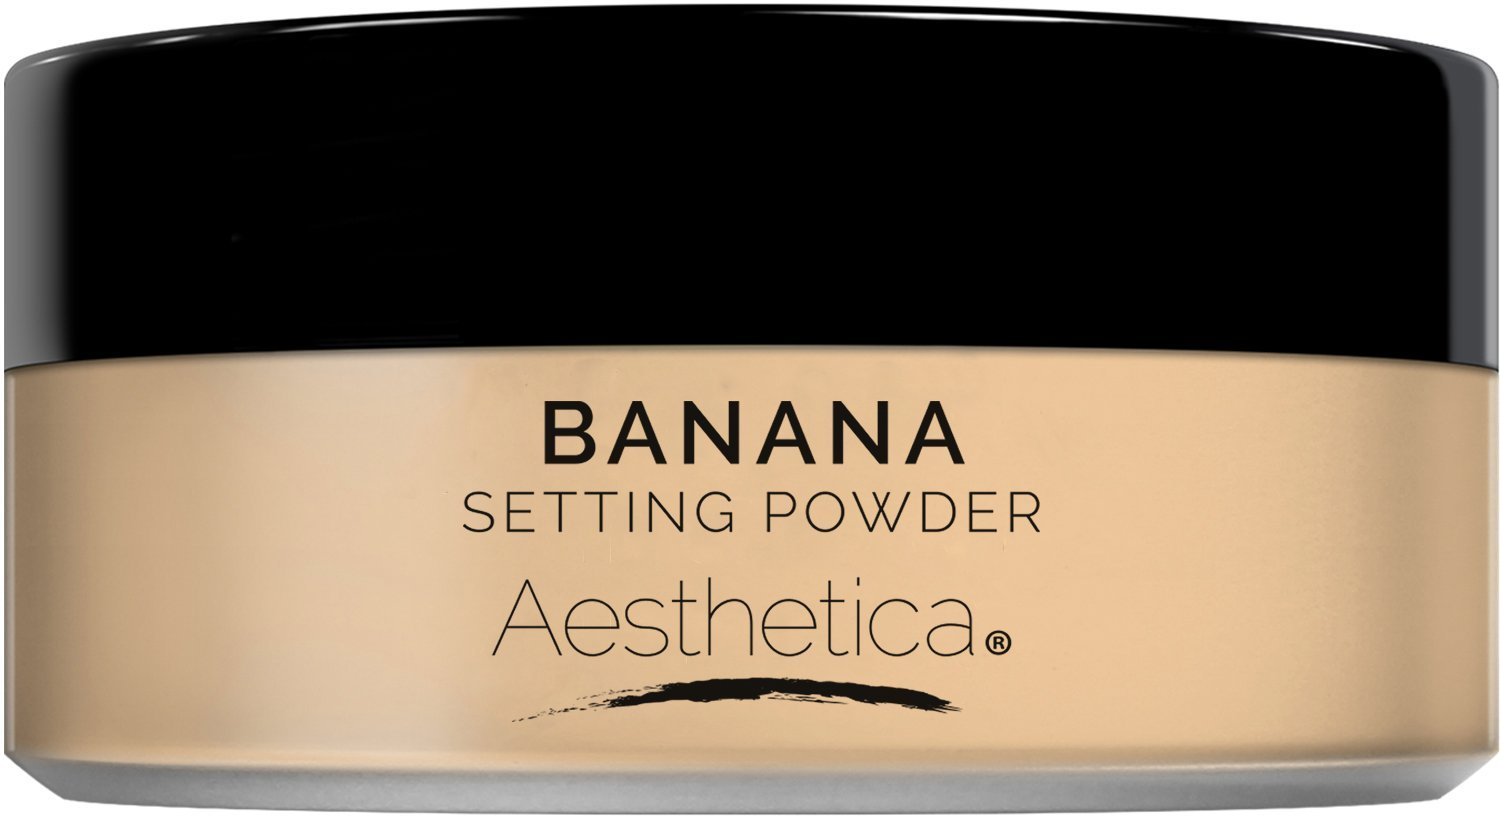 Aesthetica Banana Loose Setting Powder - Flash Friendly Superior Matte Finish Highlighter & Finishing Powder - Includes Velour Puff by Aesthetica